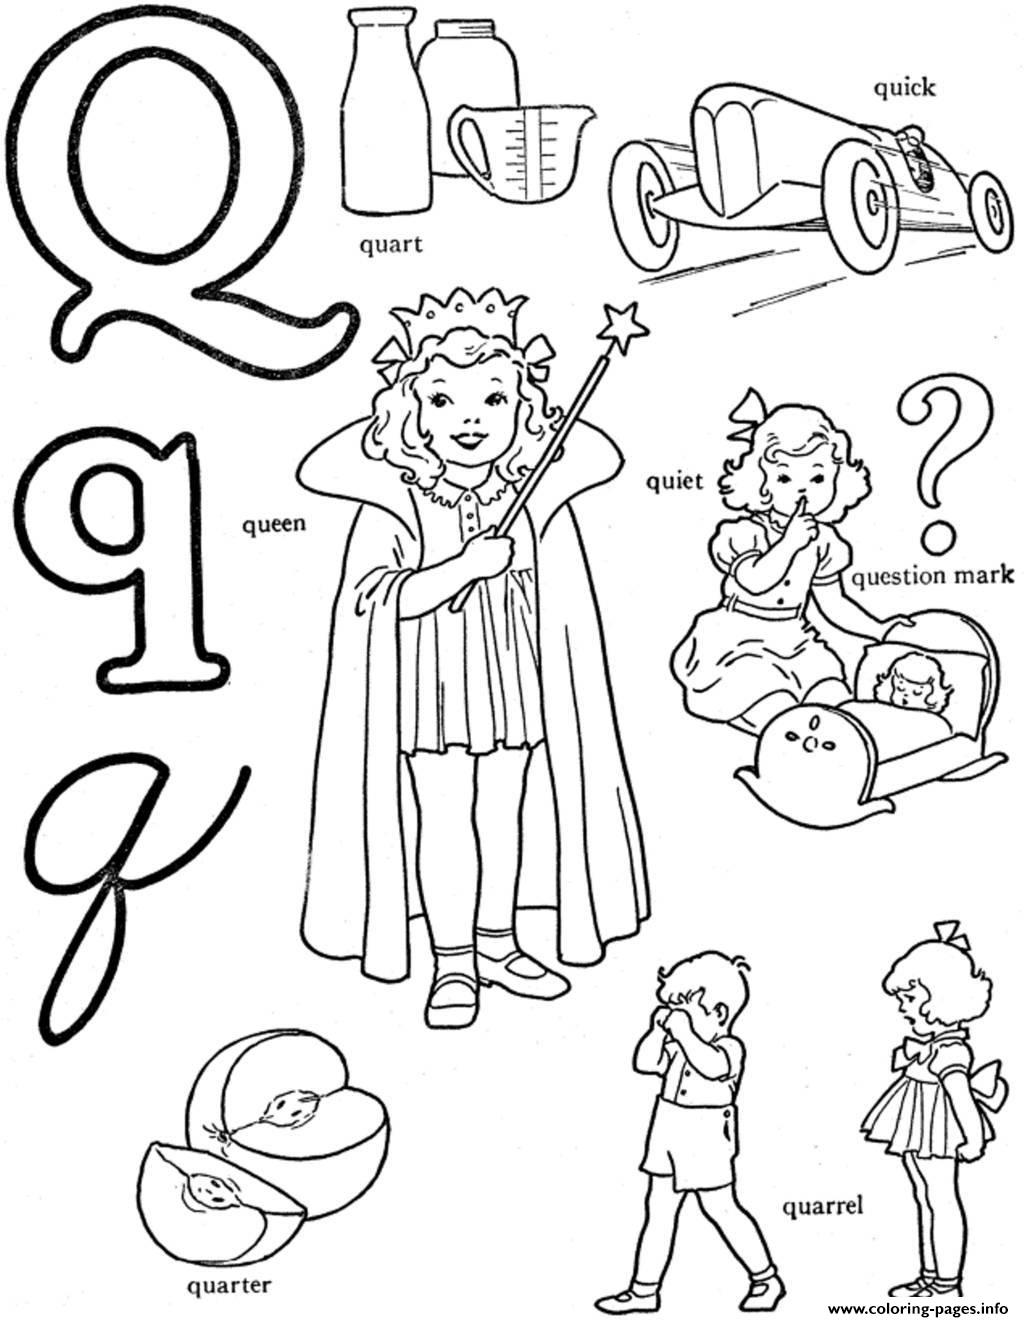 Alphabet S Words For Qa62a Coloring Pages Printable